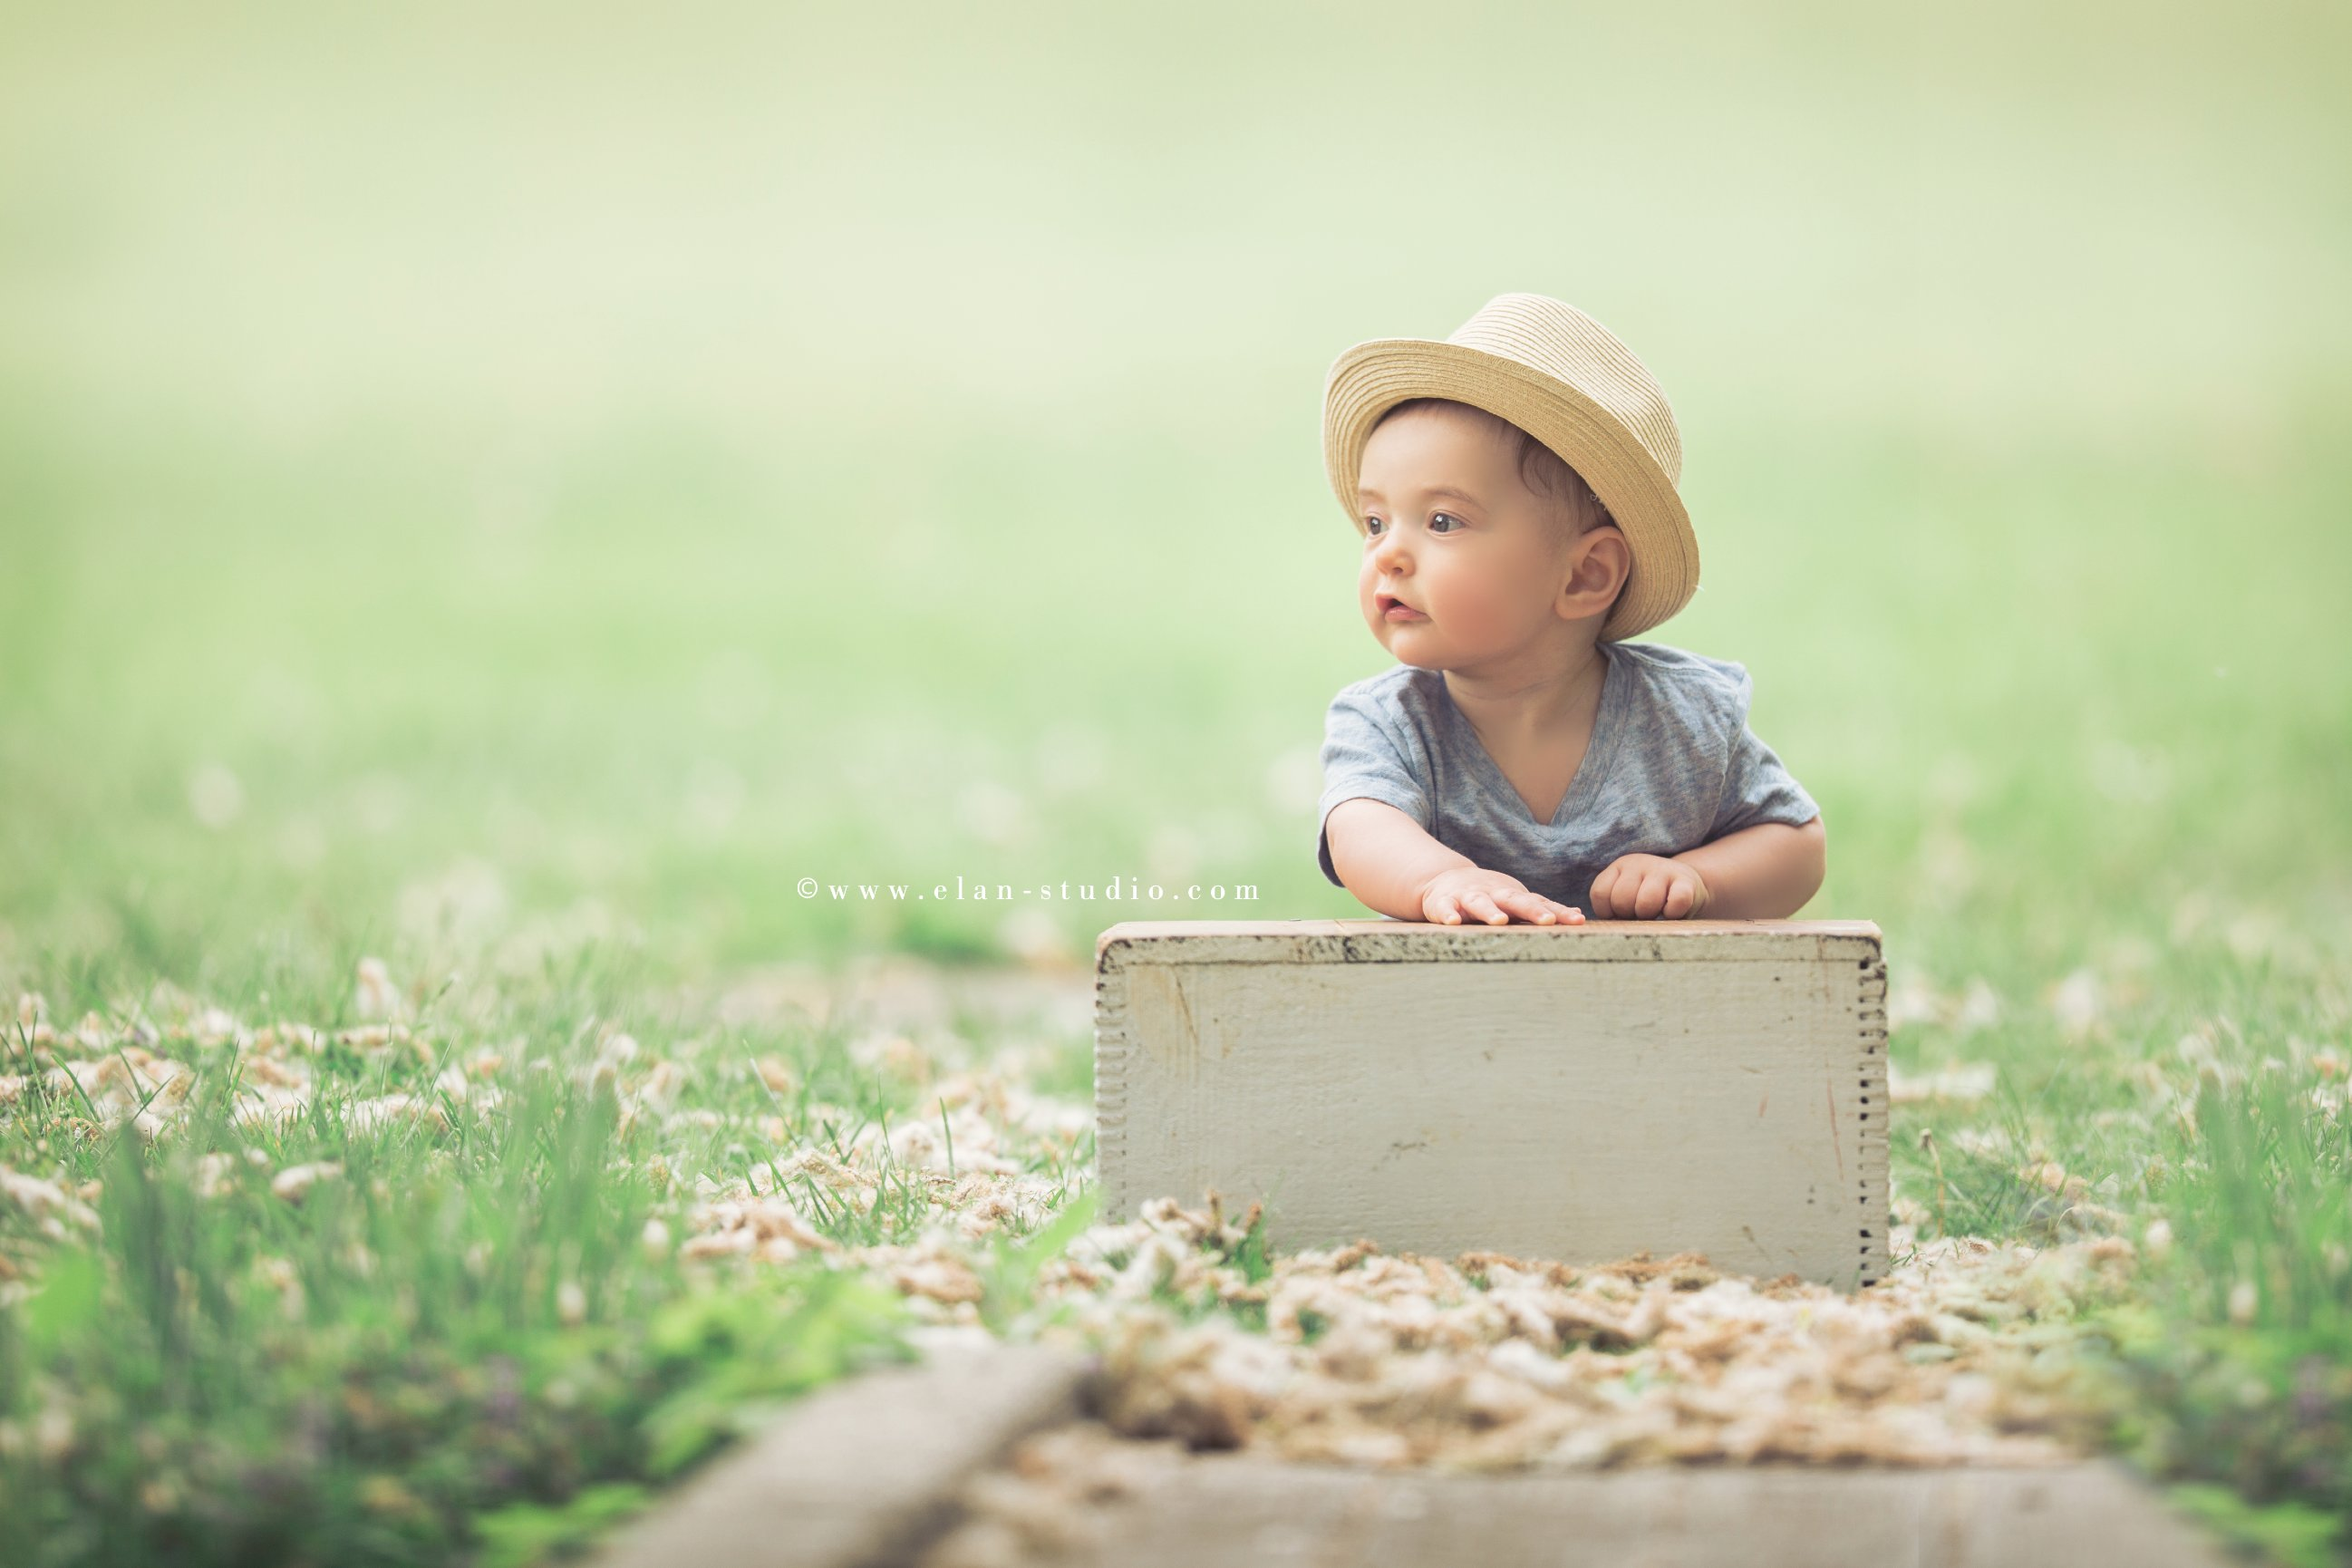 sitting baby boy wearing straw hat and blue chambray shirt